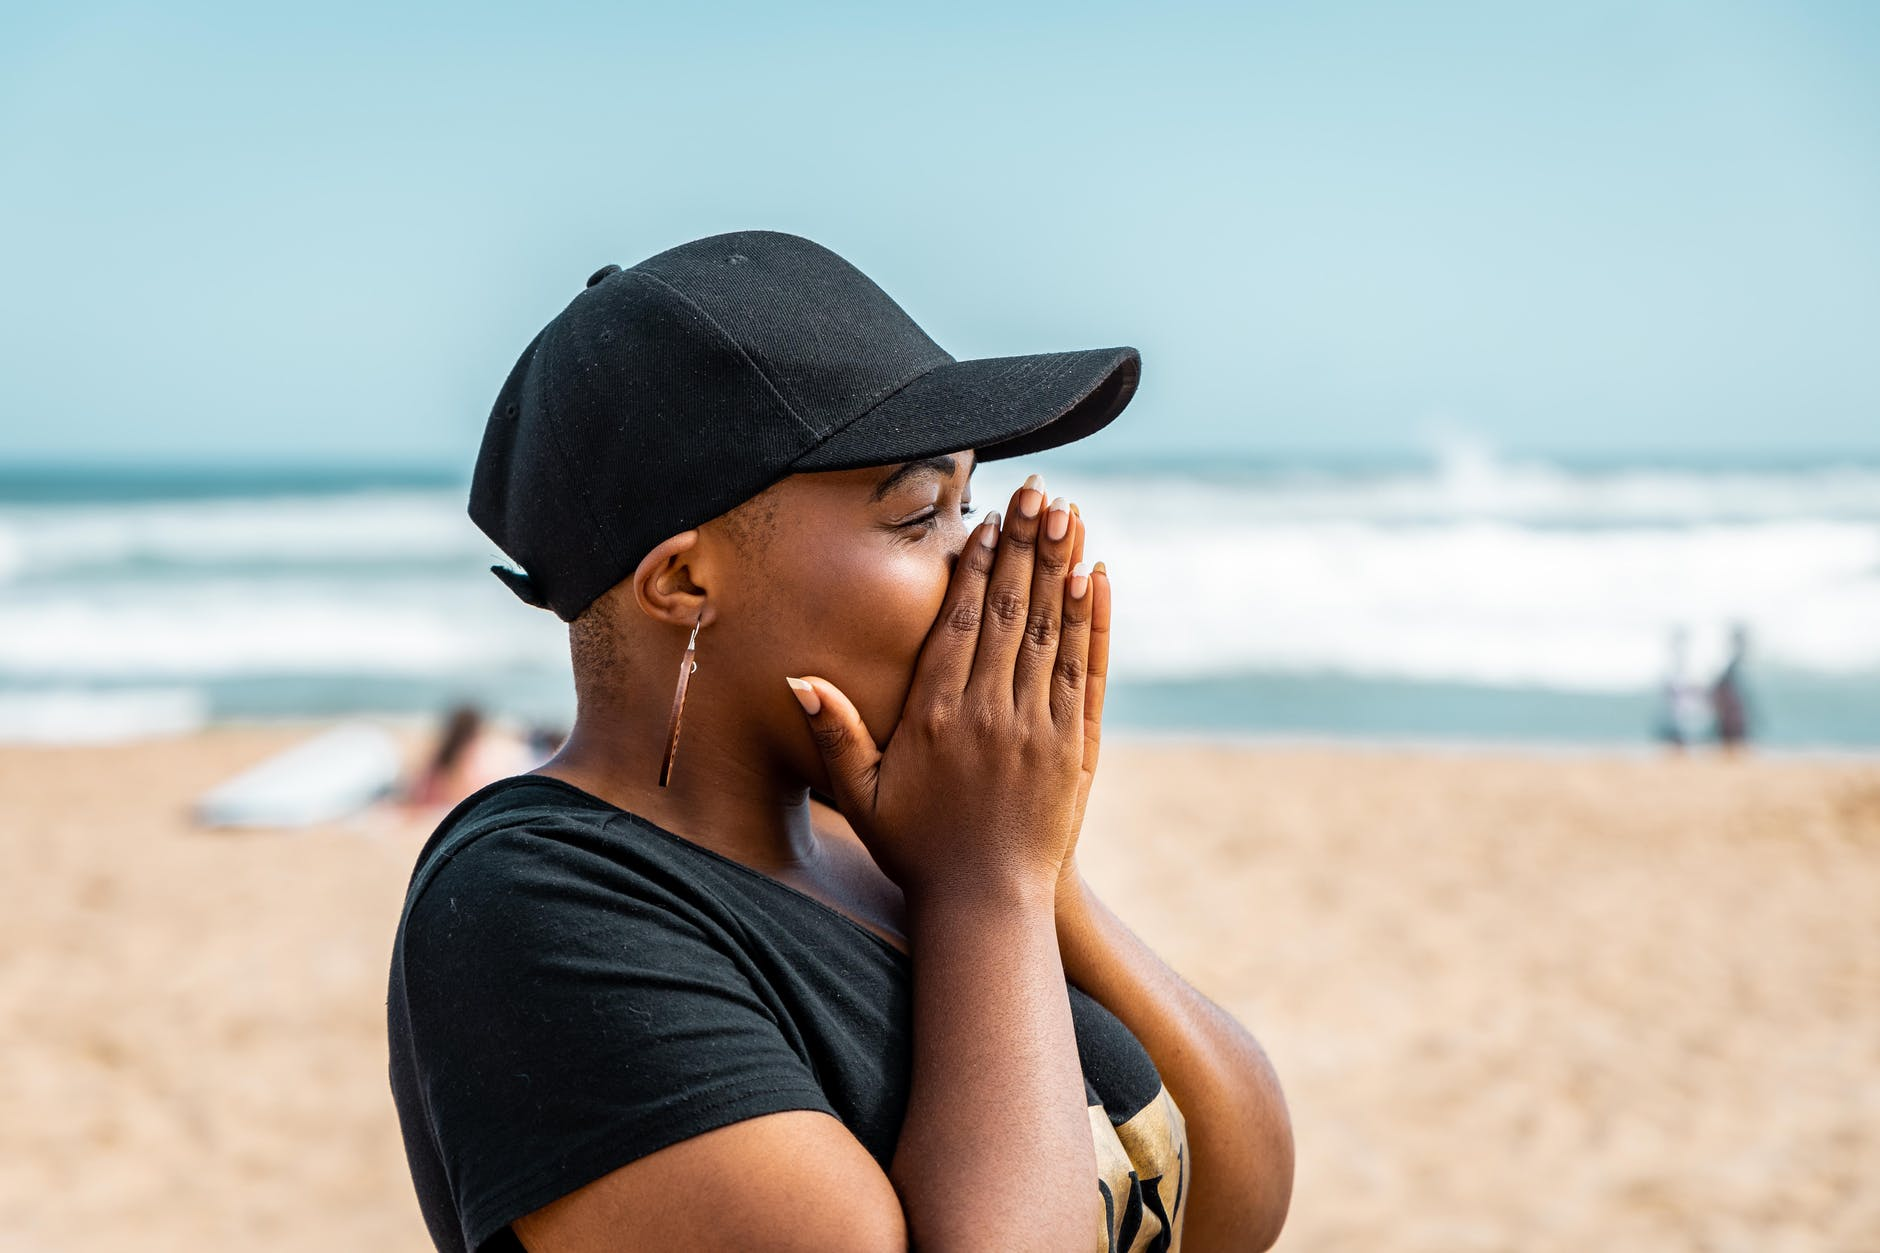 Black woman covering her face with her mouth